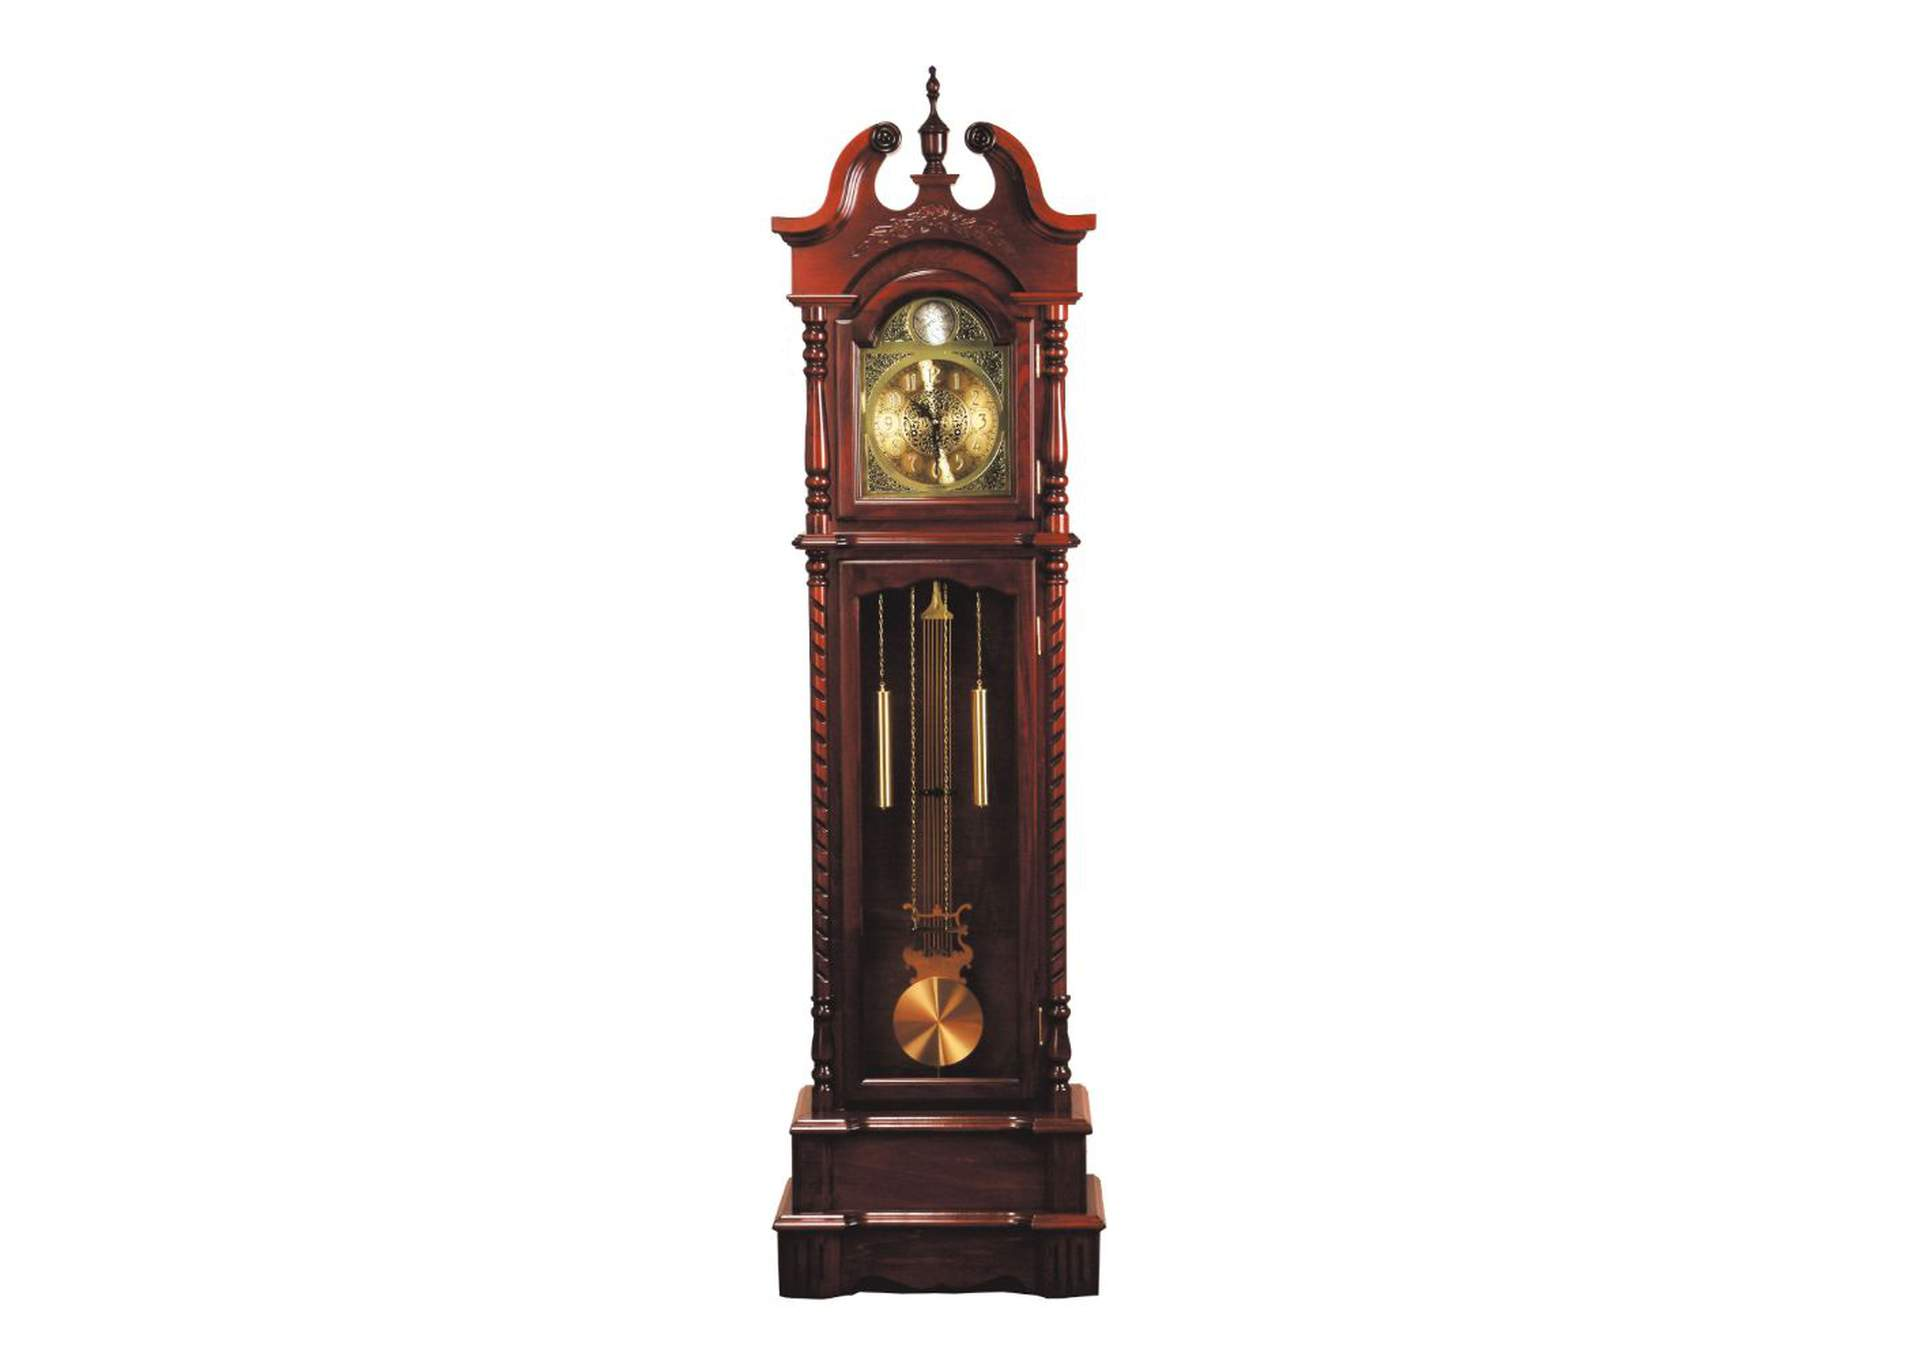 Broadmoor Walnut Grandfather Clock,Acme